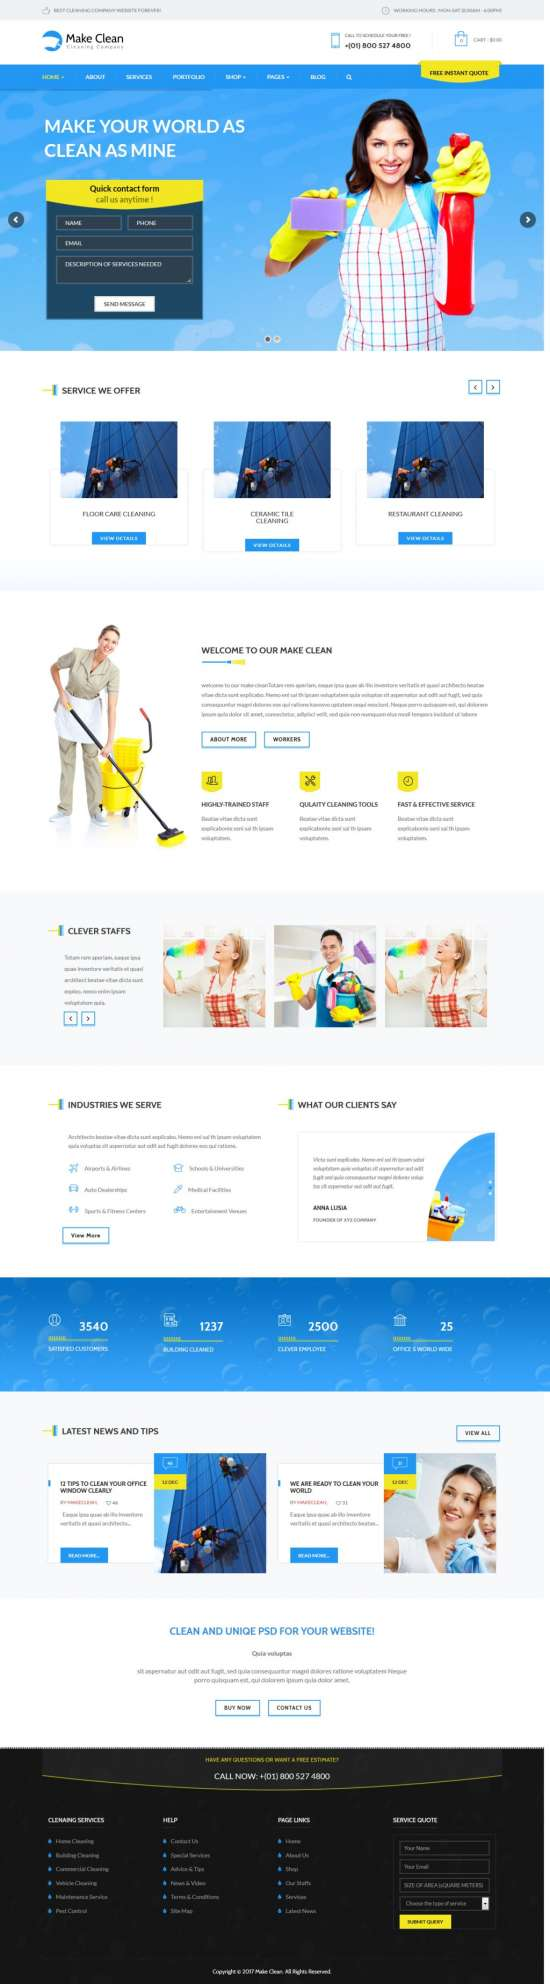 make clean wordpress theme 01 550x1984 - Make Clean WordPress Theme